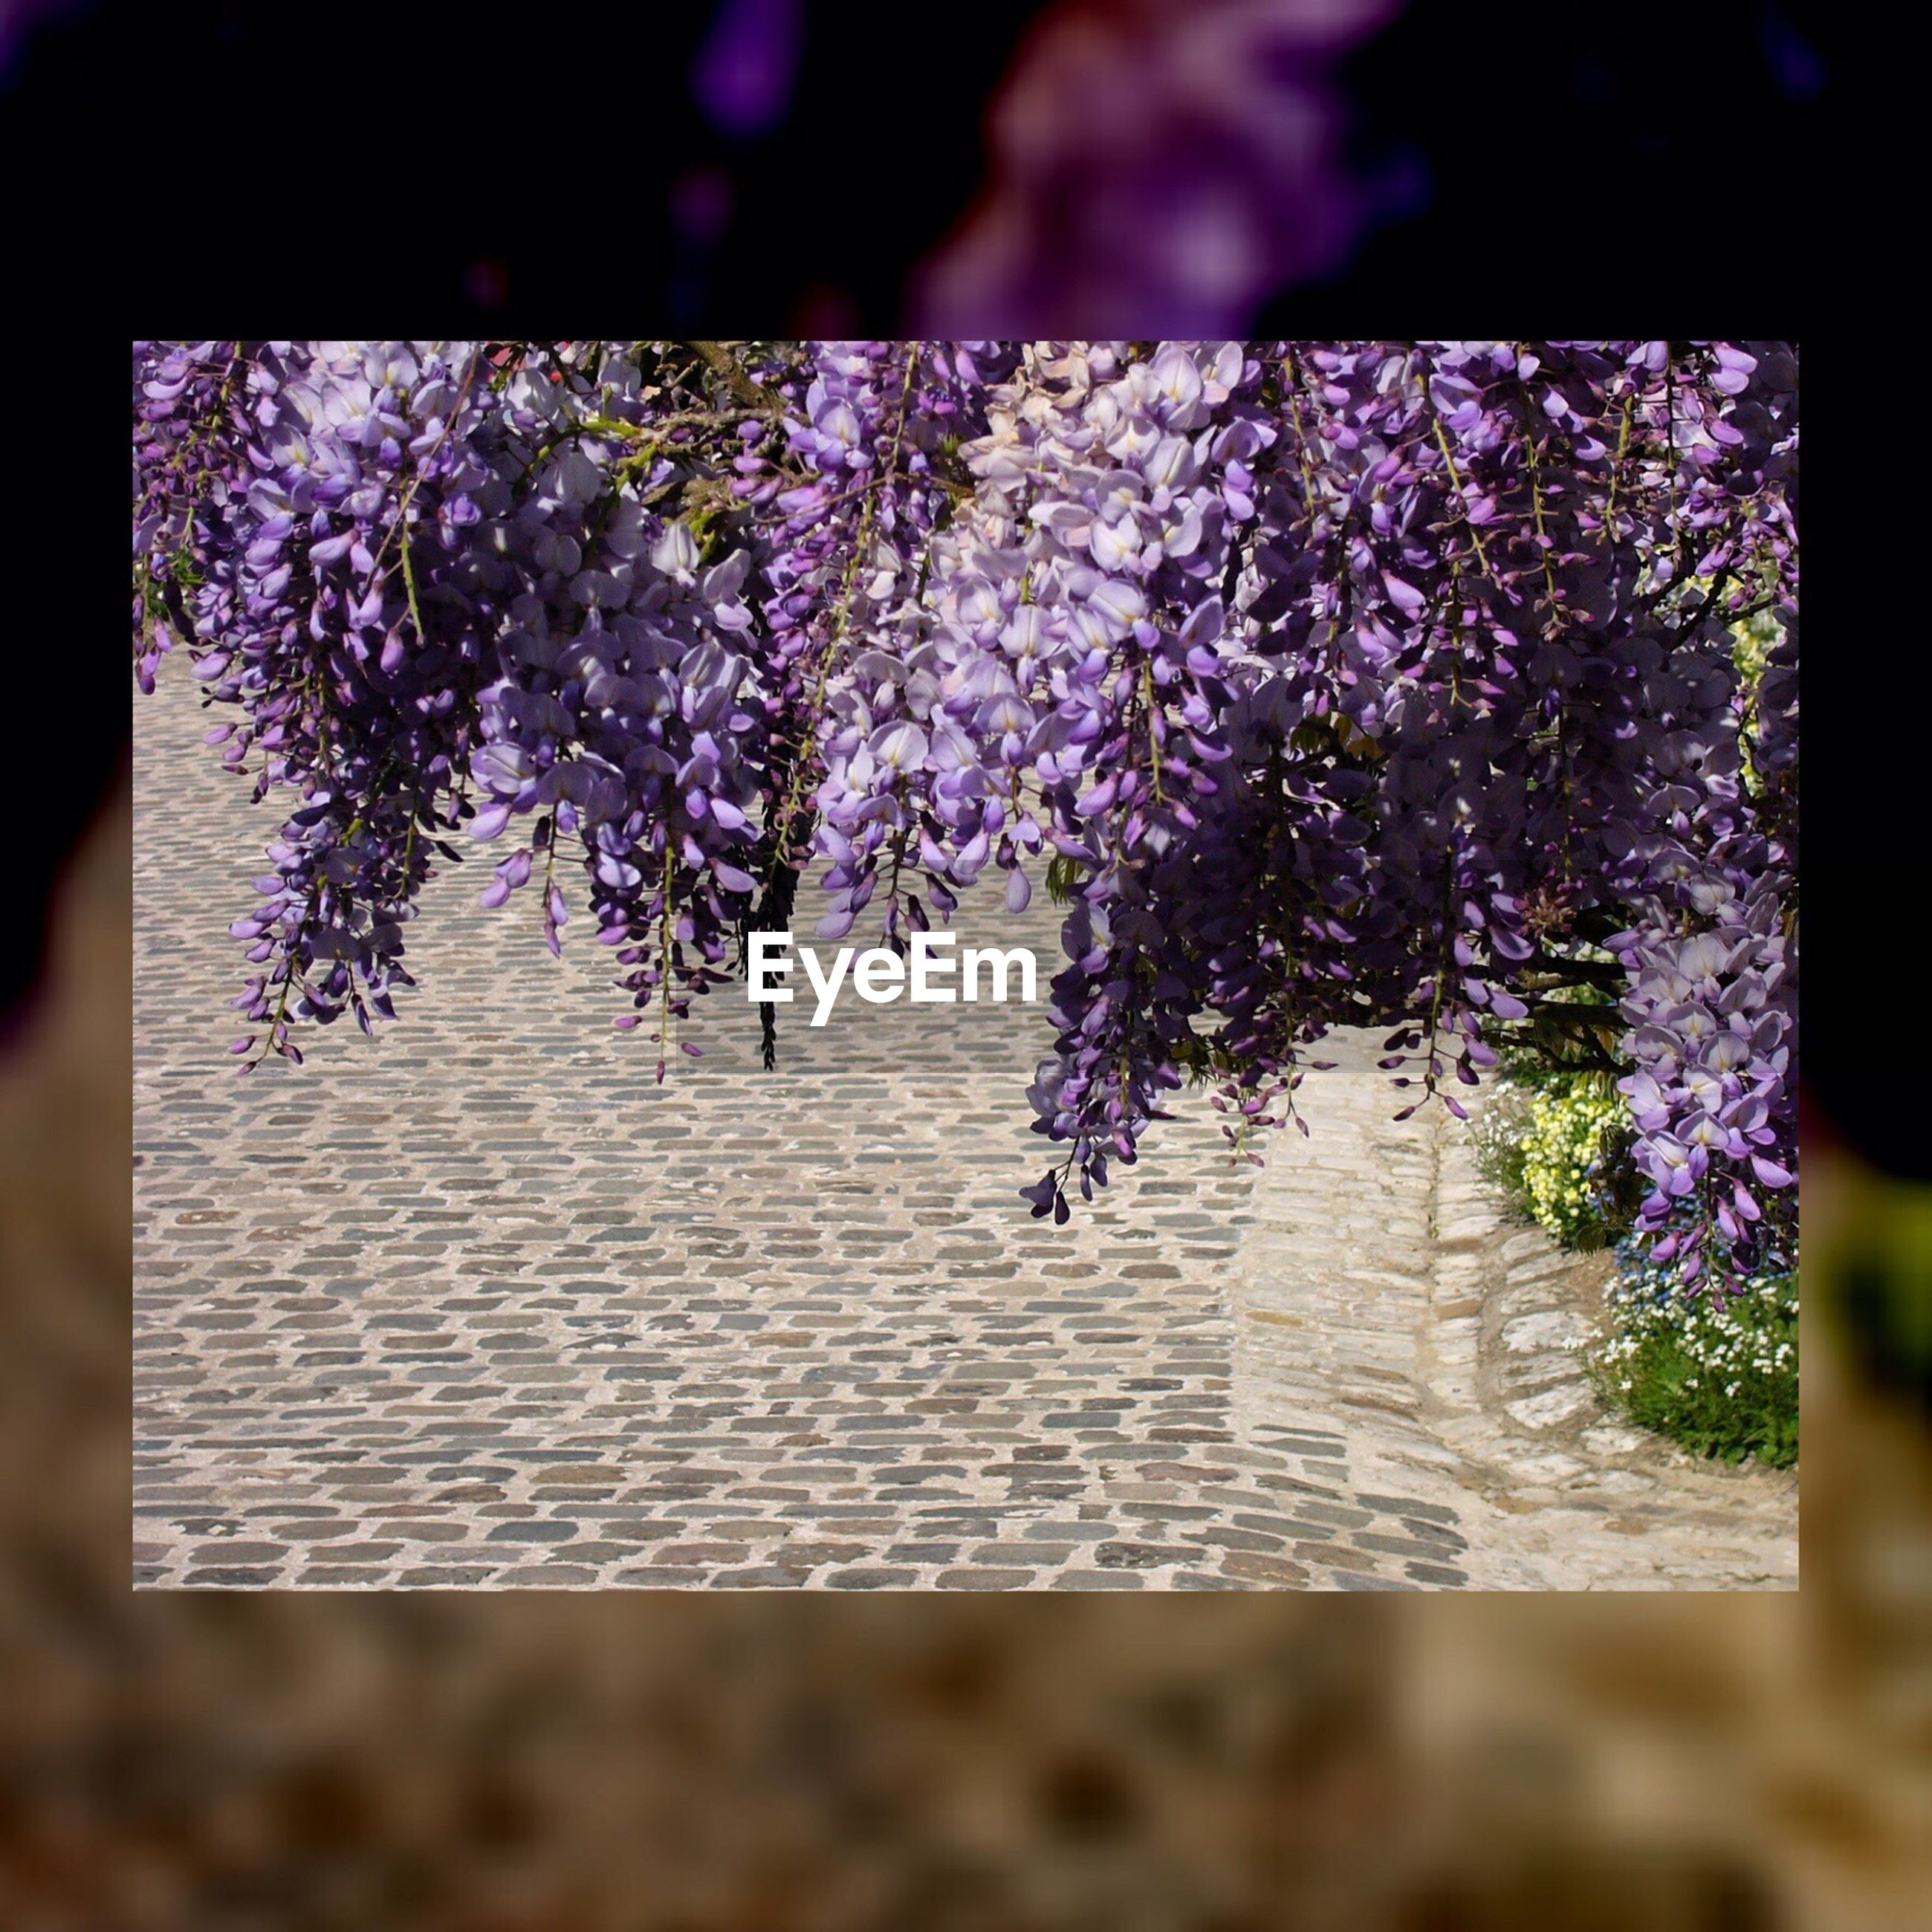 flower, freshness, purple, growth, fragility, beauty in nature, nature, petal, selective focus, plant, blooming, in bloom, close-up, blossom, auto post production filter, focus on foreground, botany, day, no people, outdoors